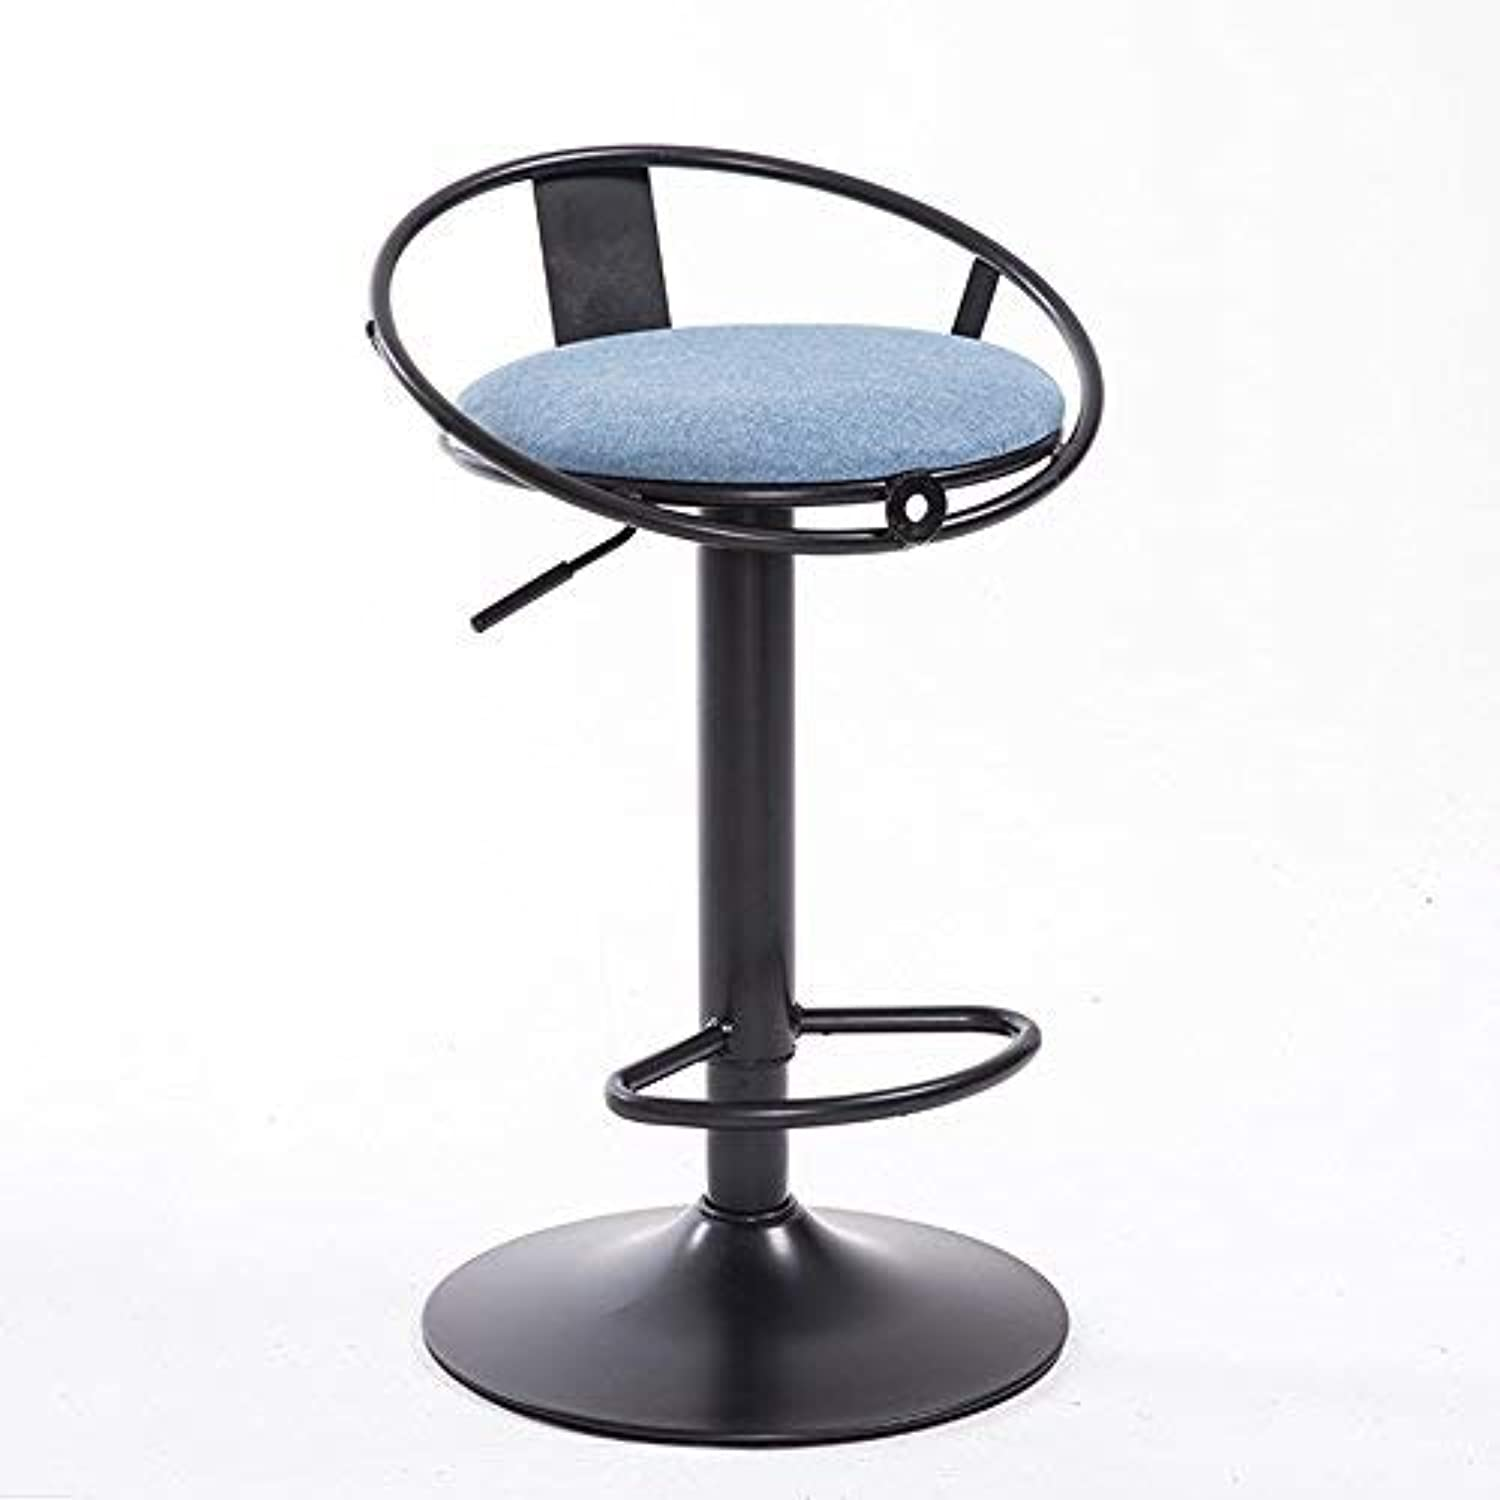 SED Chair - Bar Chairs Round Stool High Stool Dining Chair Iron Chair Height Adjustable Modern Style Adult Home Stool